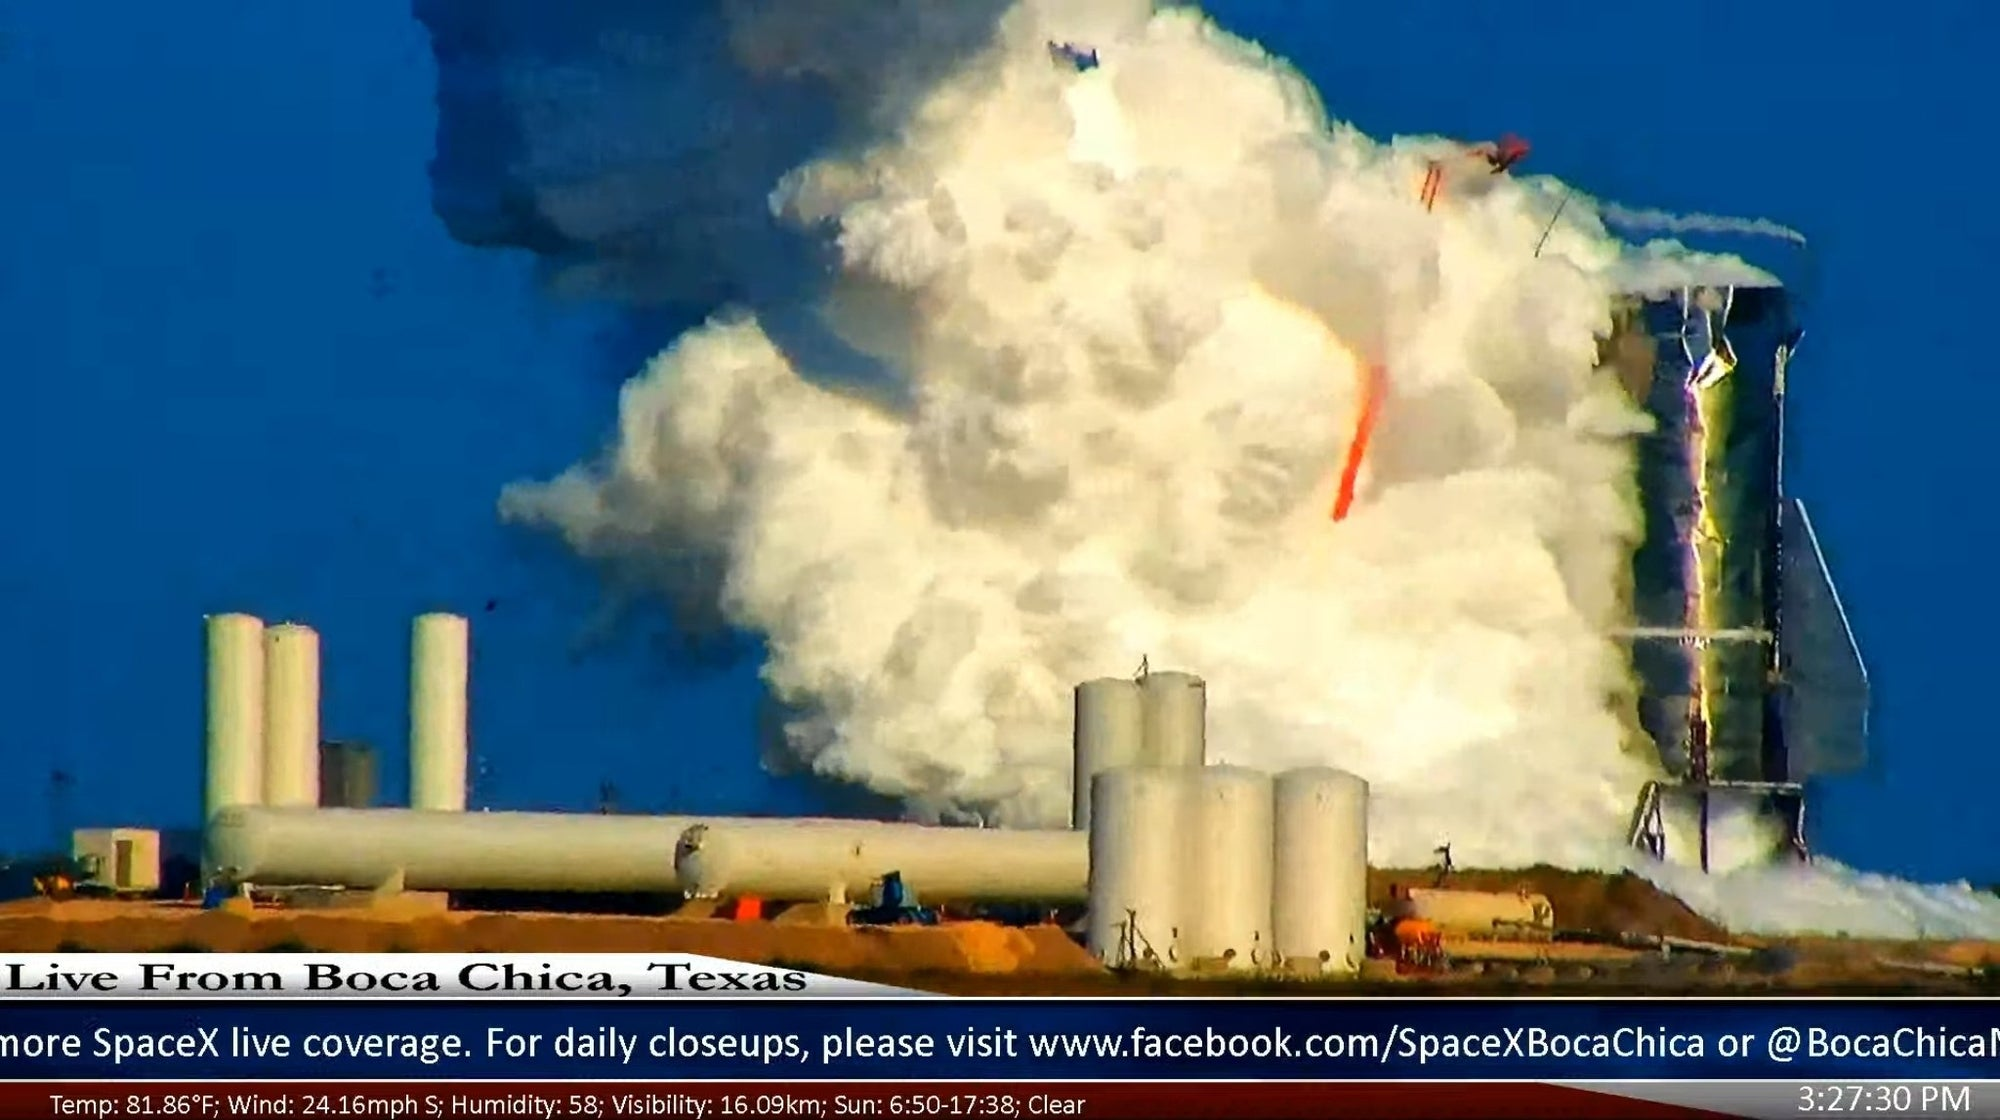 SpaceX Starship Mk1 tests in Boca Chica Texas